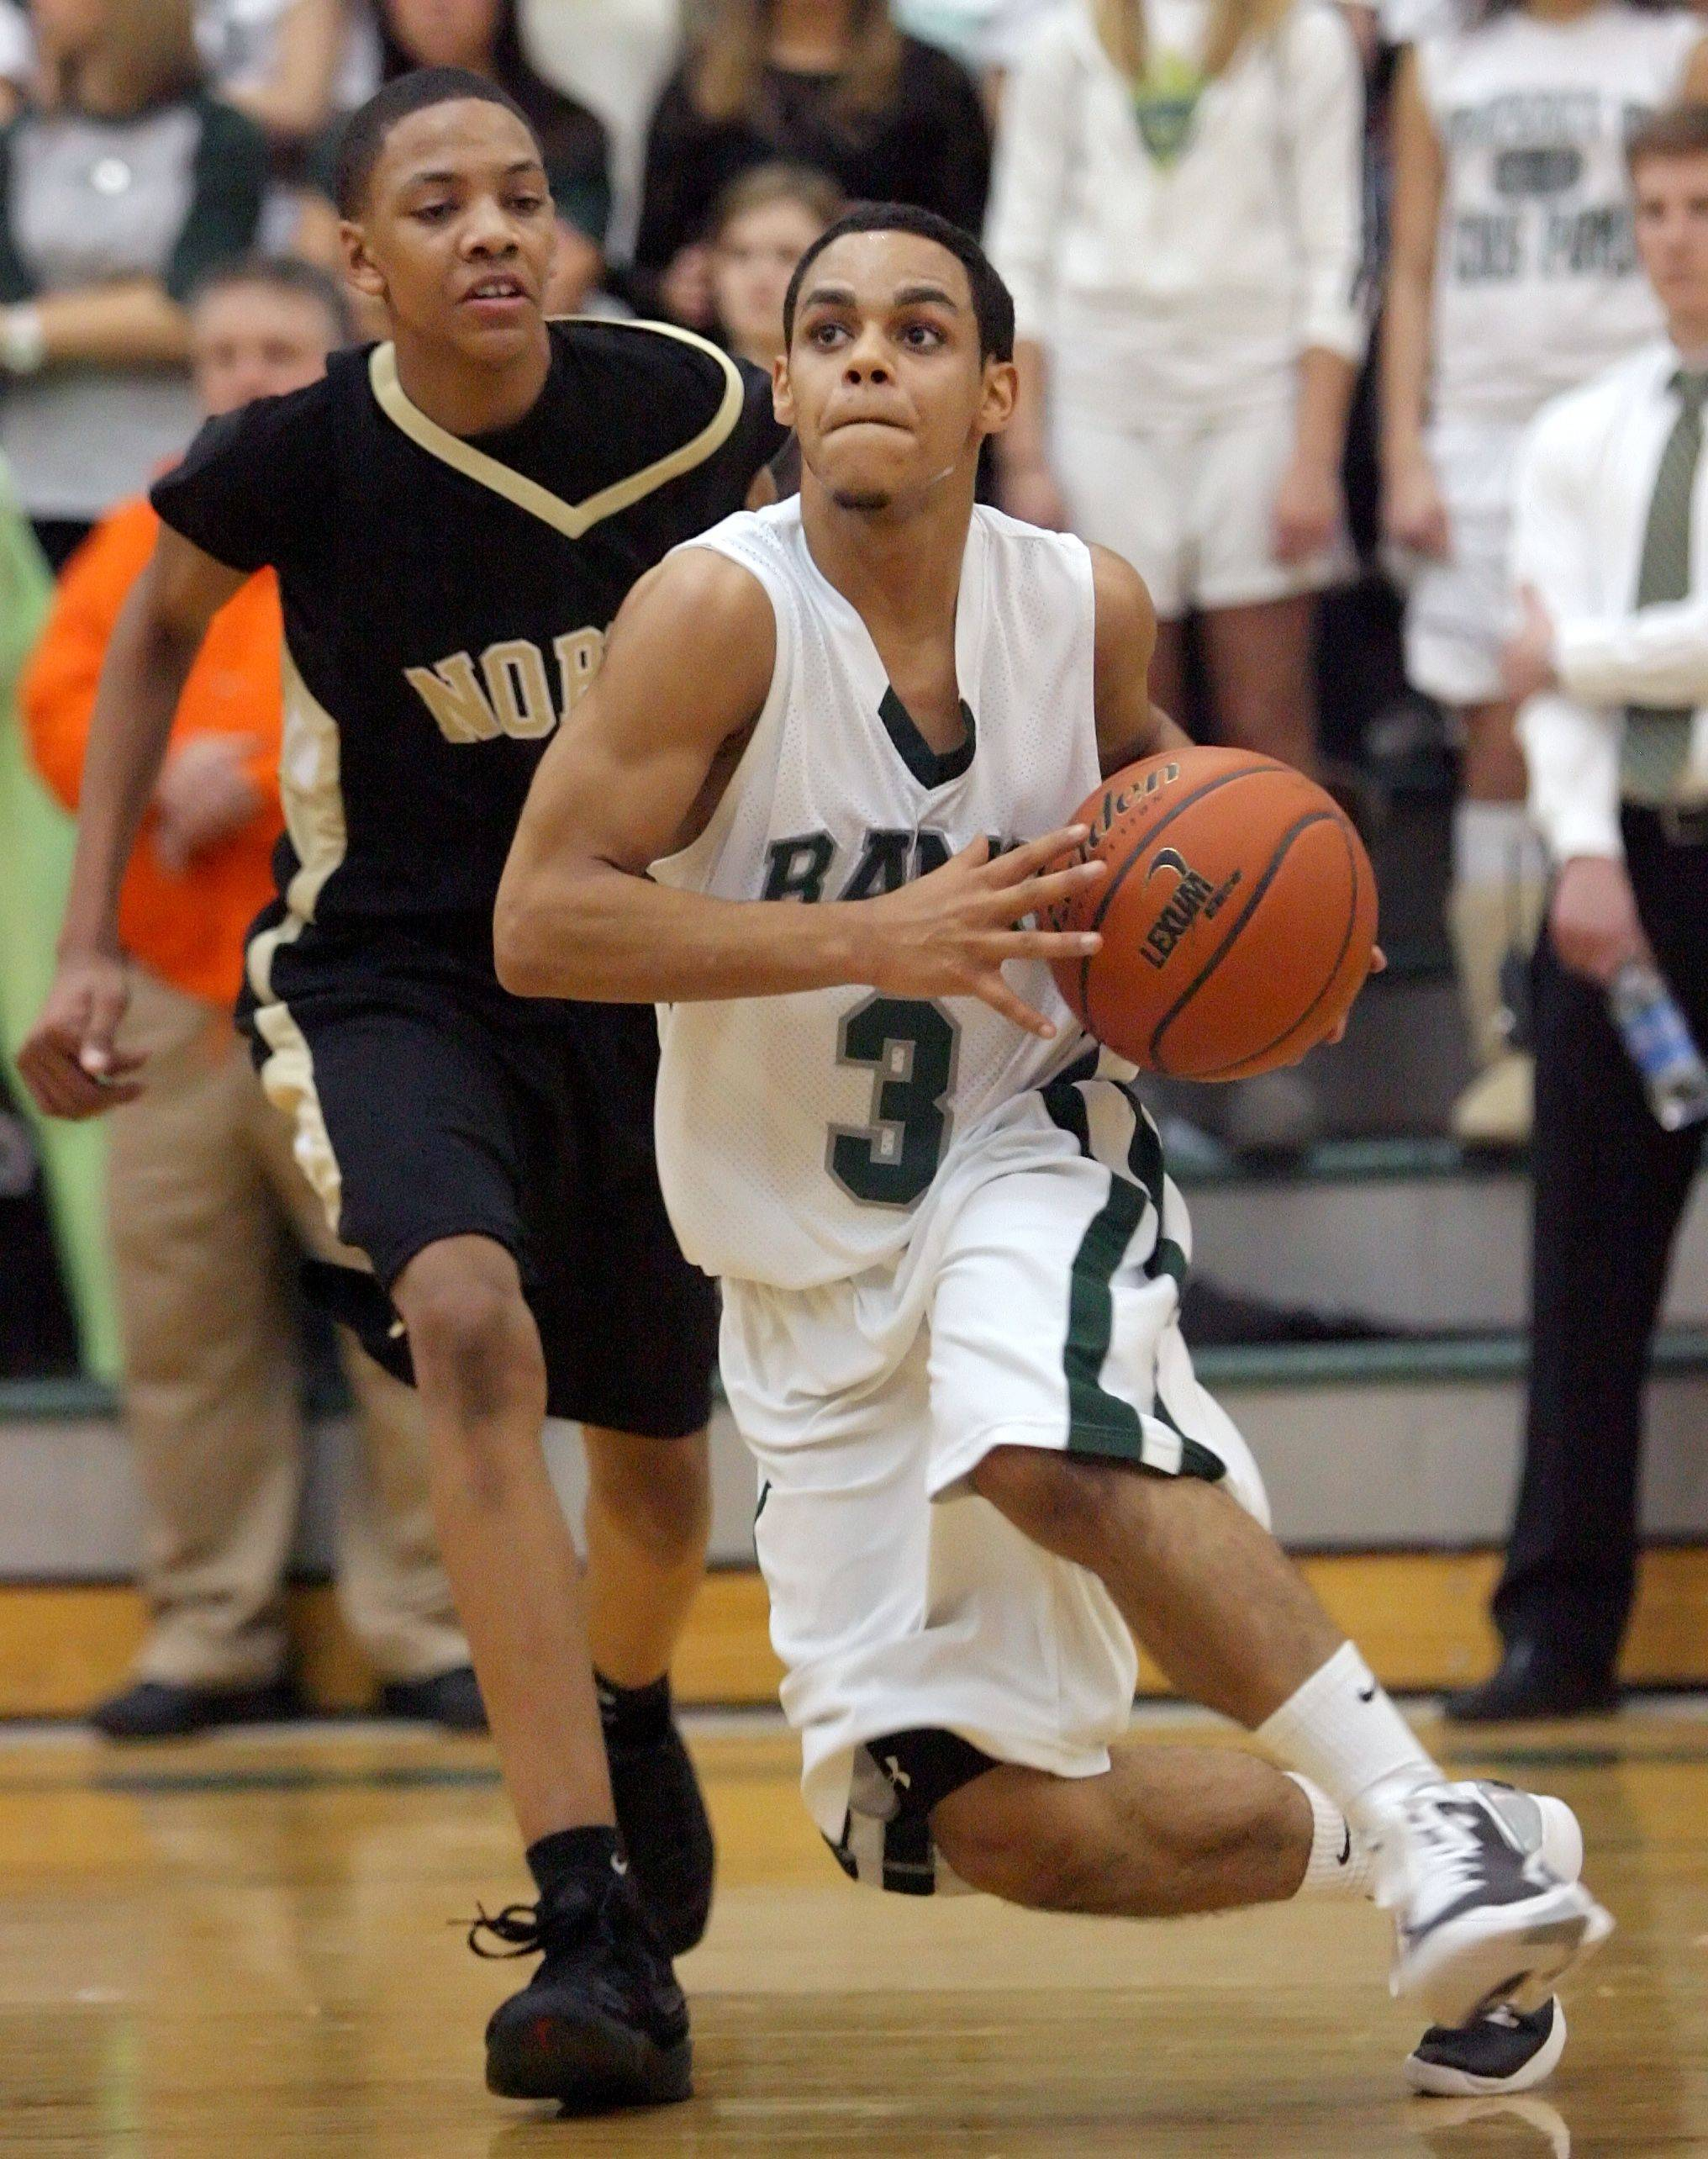 Grayslake Central's Jordan Taylor, right, drives past Grayslake North's Mark Hall .